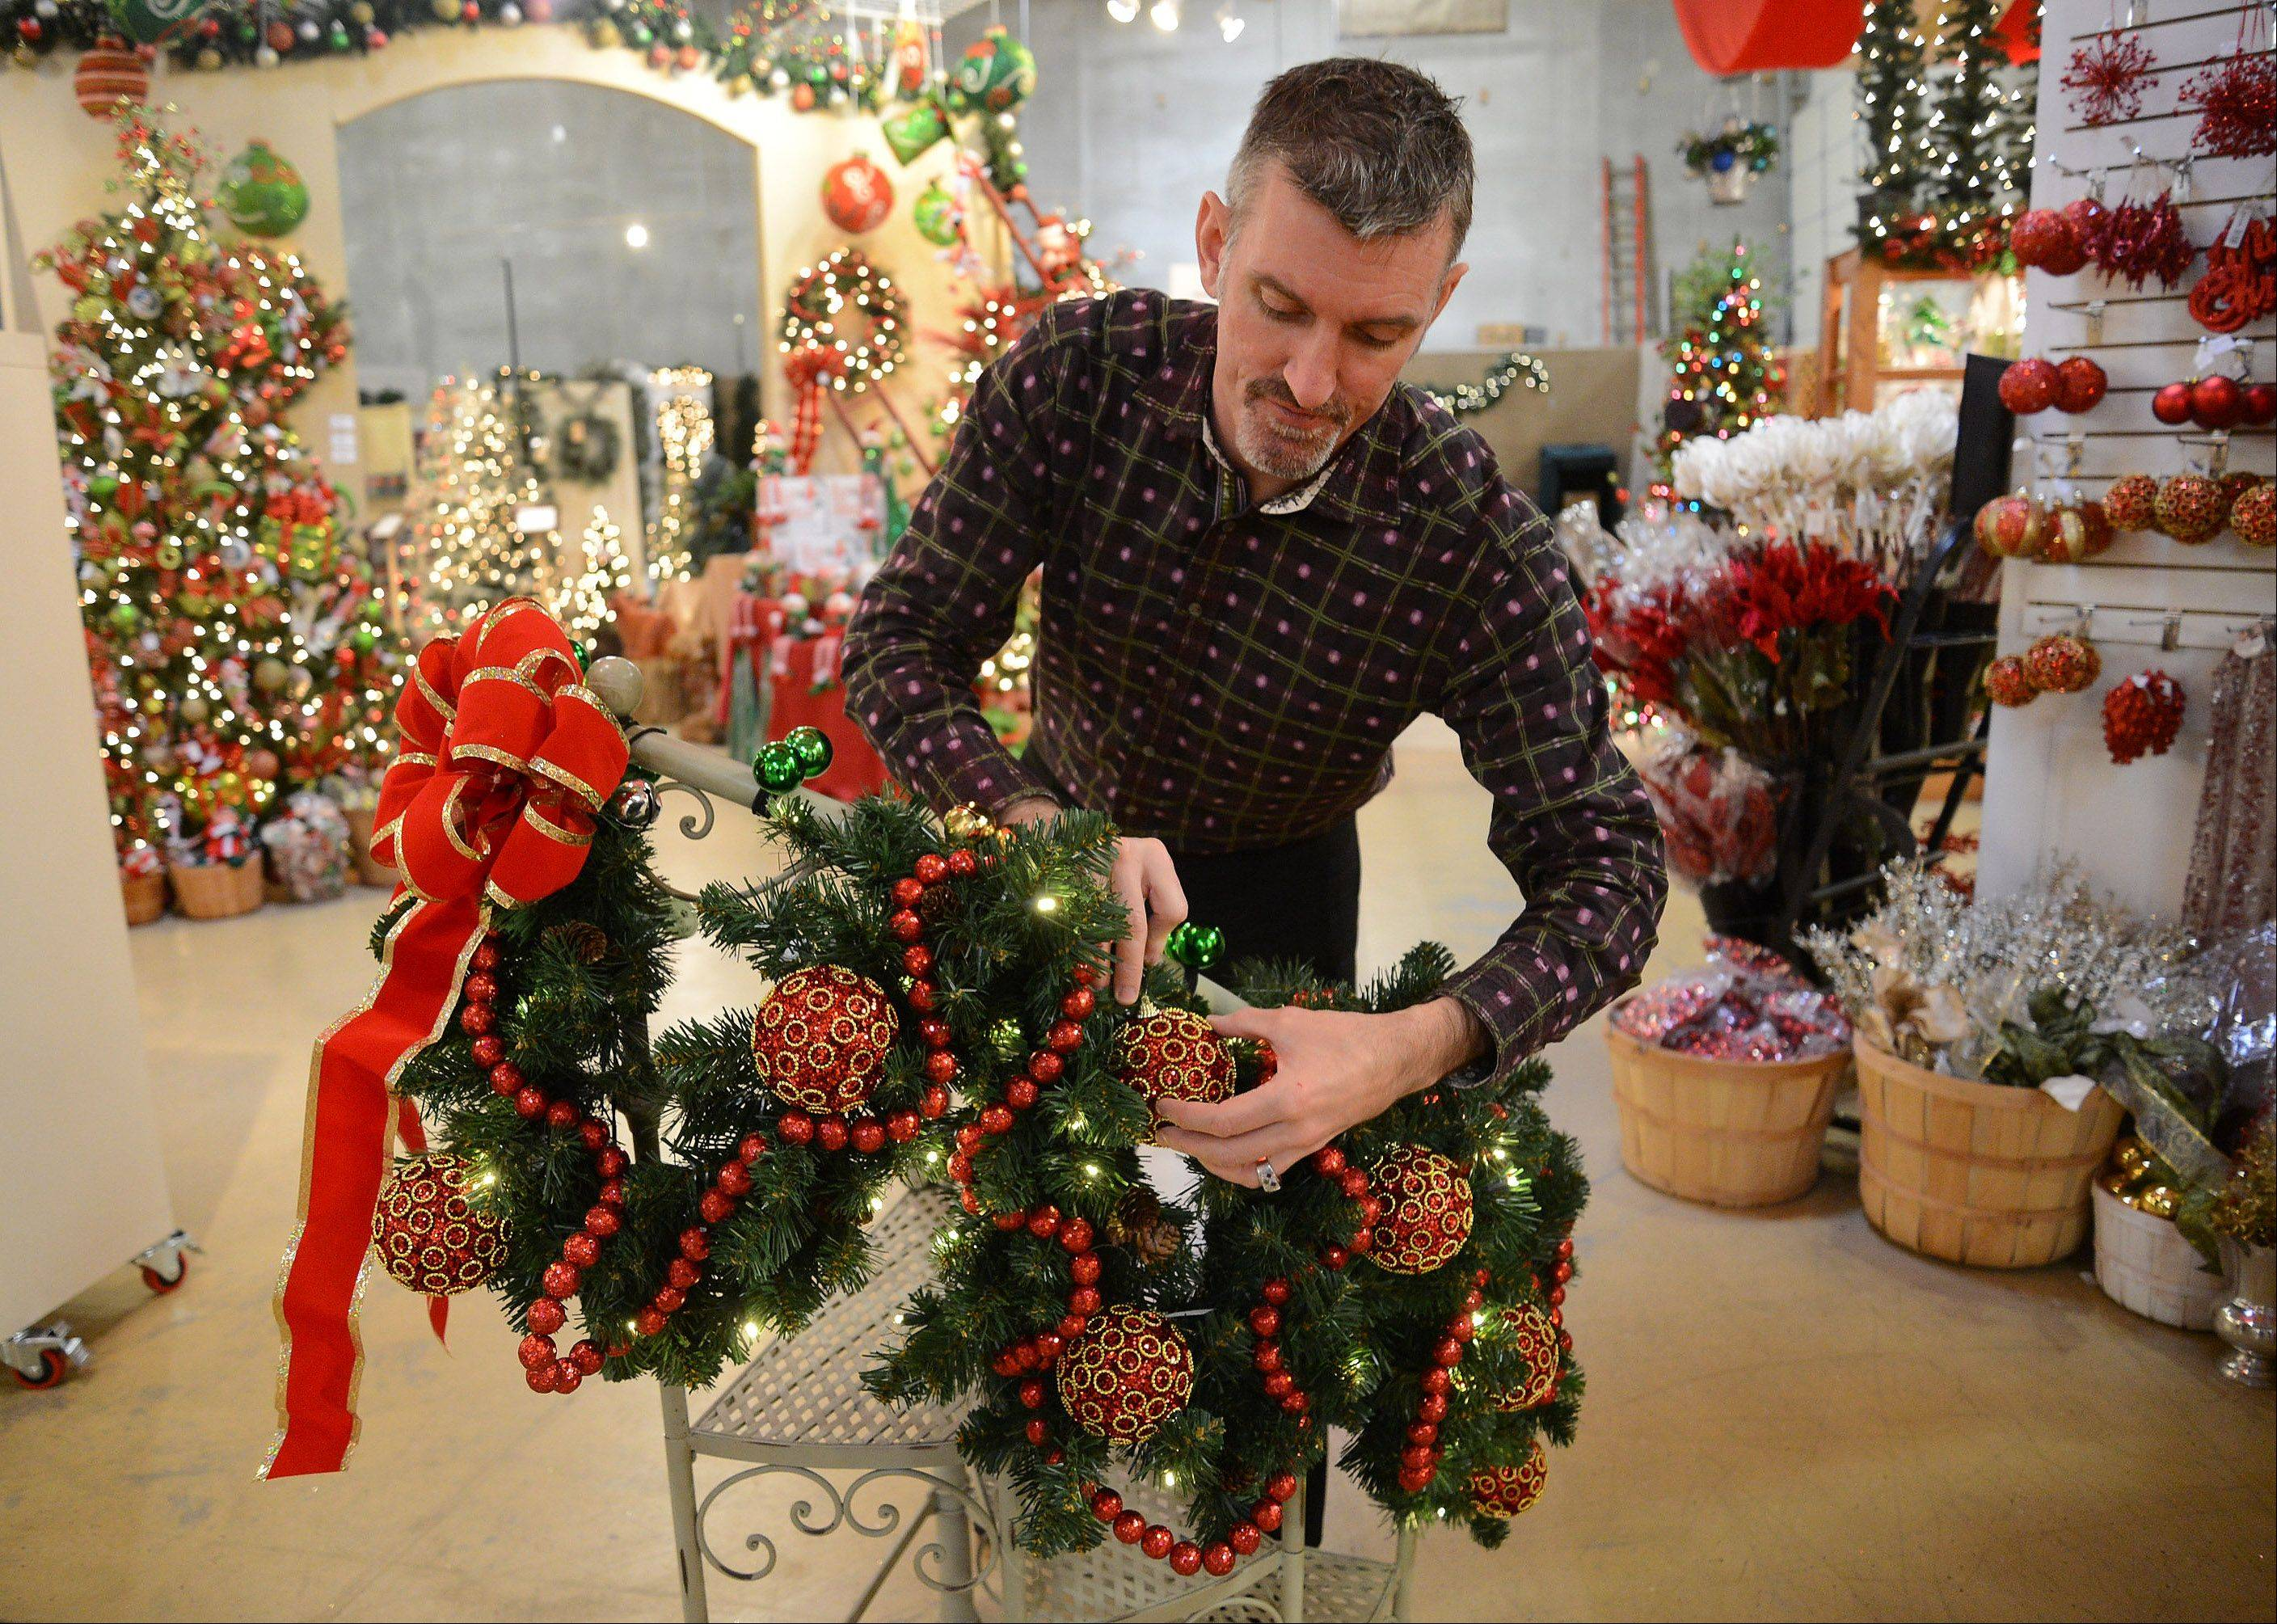 Designer James Whitehead of Treetime Christmas Creations in Lake Barrington puts together a display of garland with battery-operated lights on a railing.